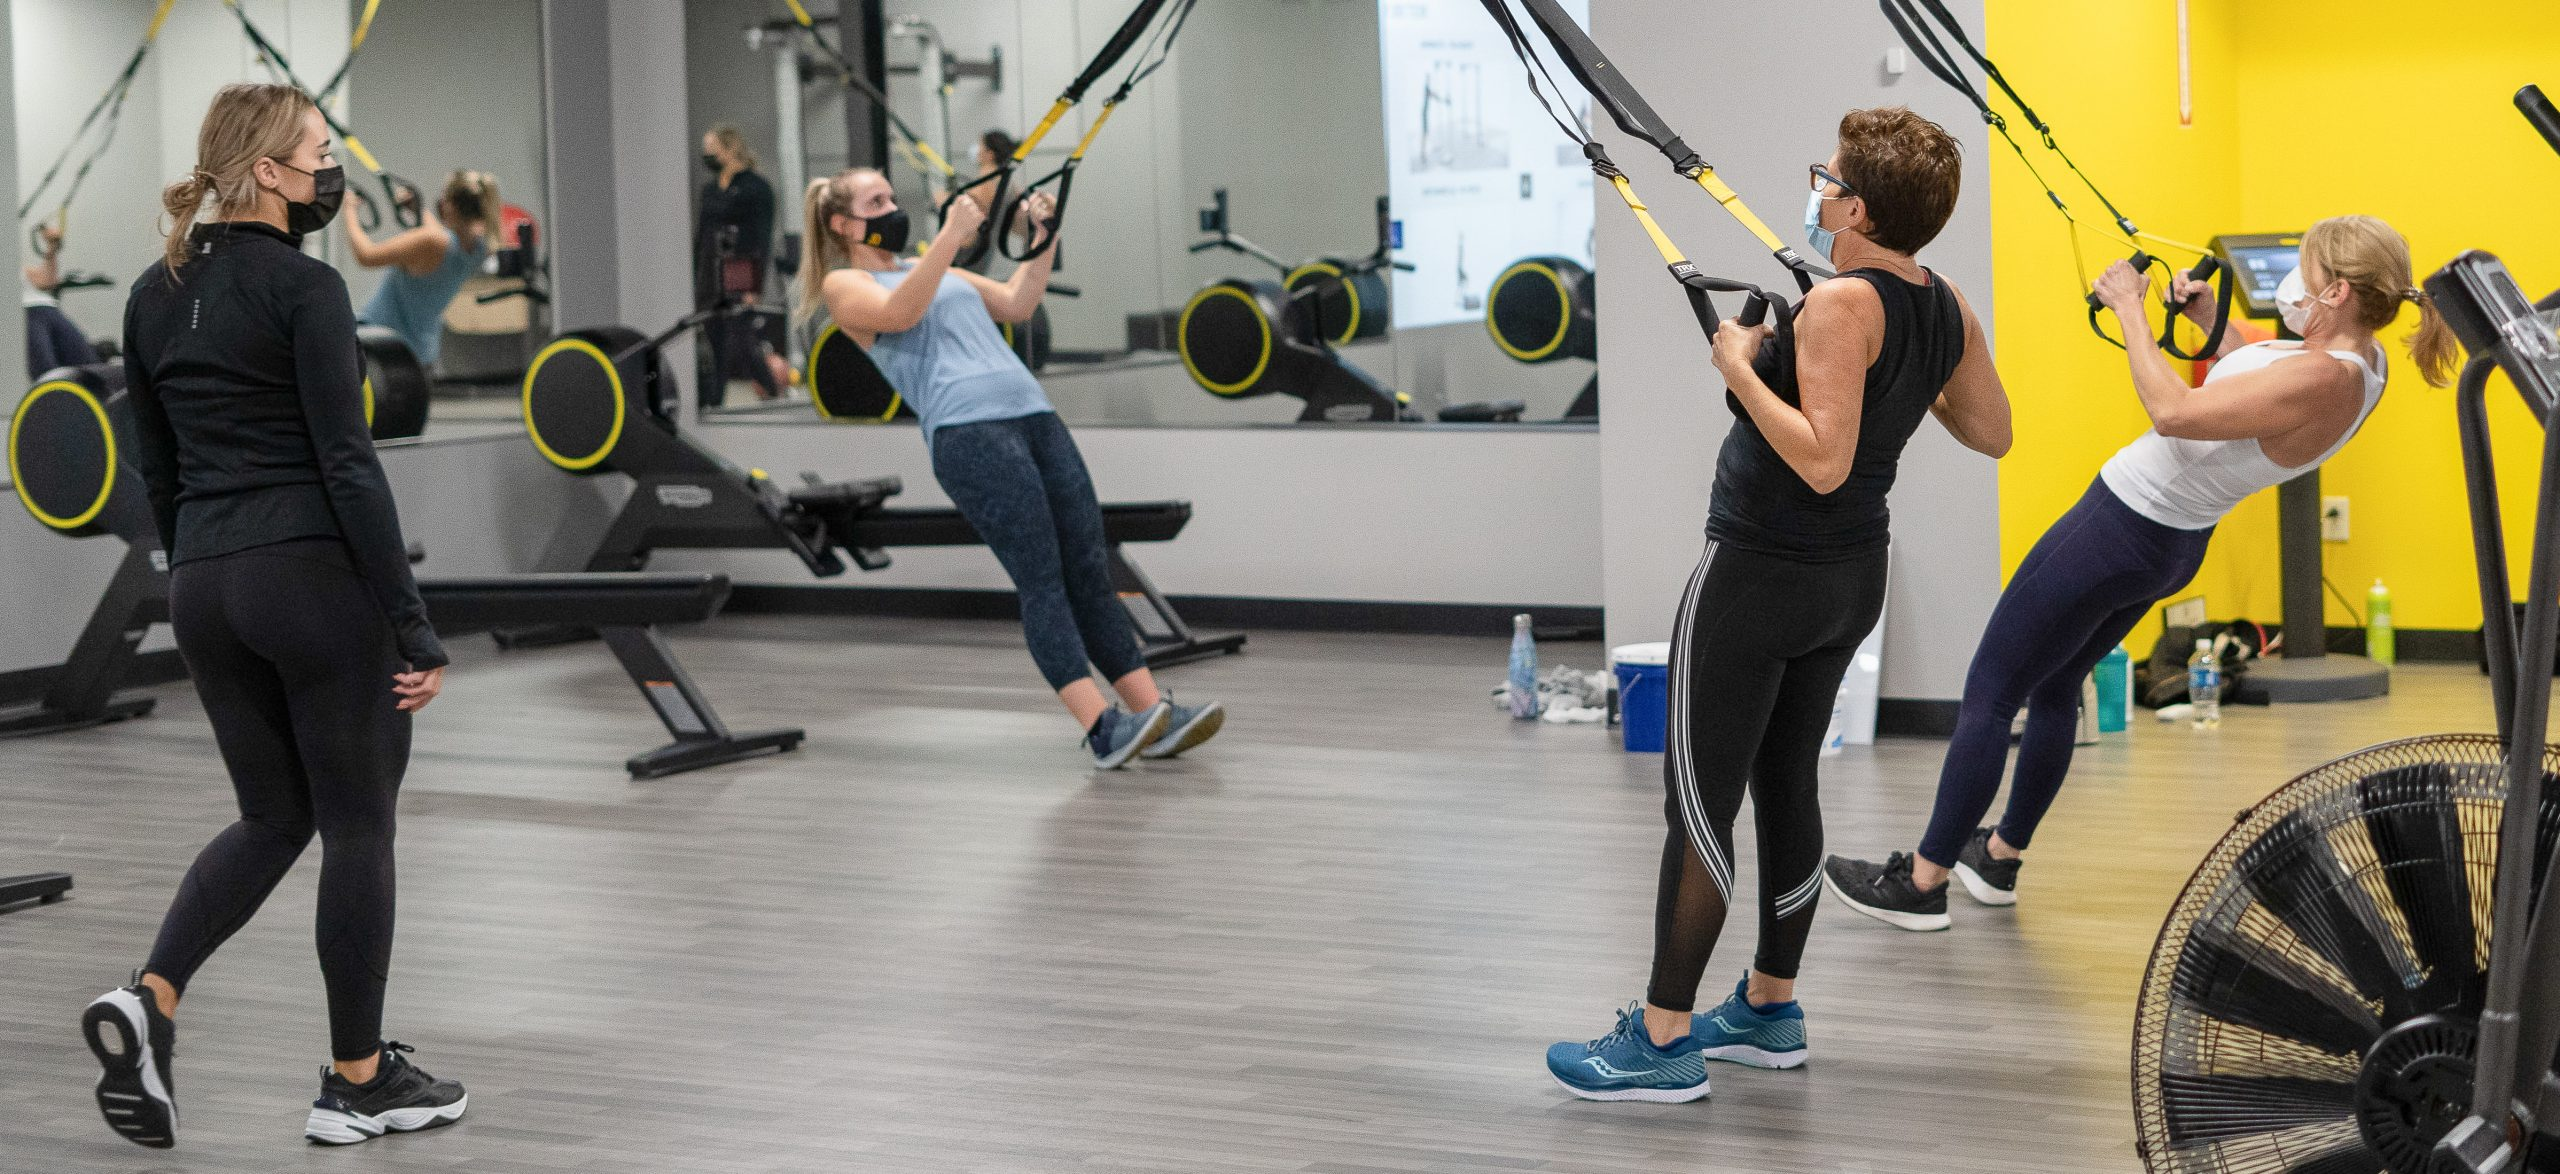 semi private and group fitness training in buffalo ny